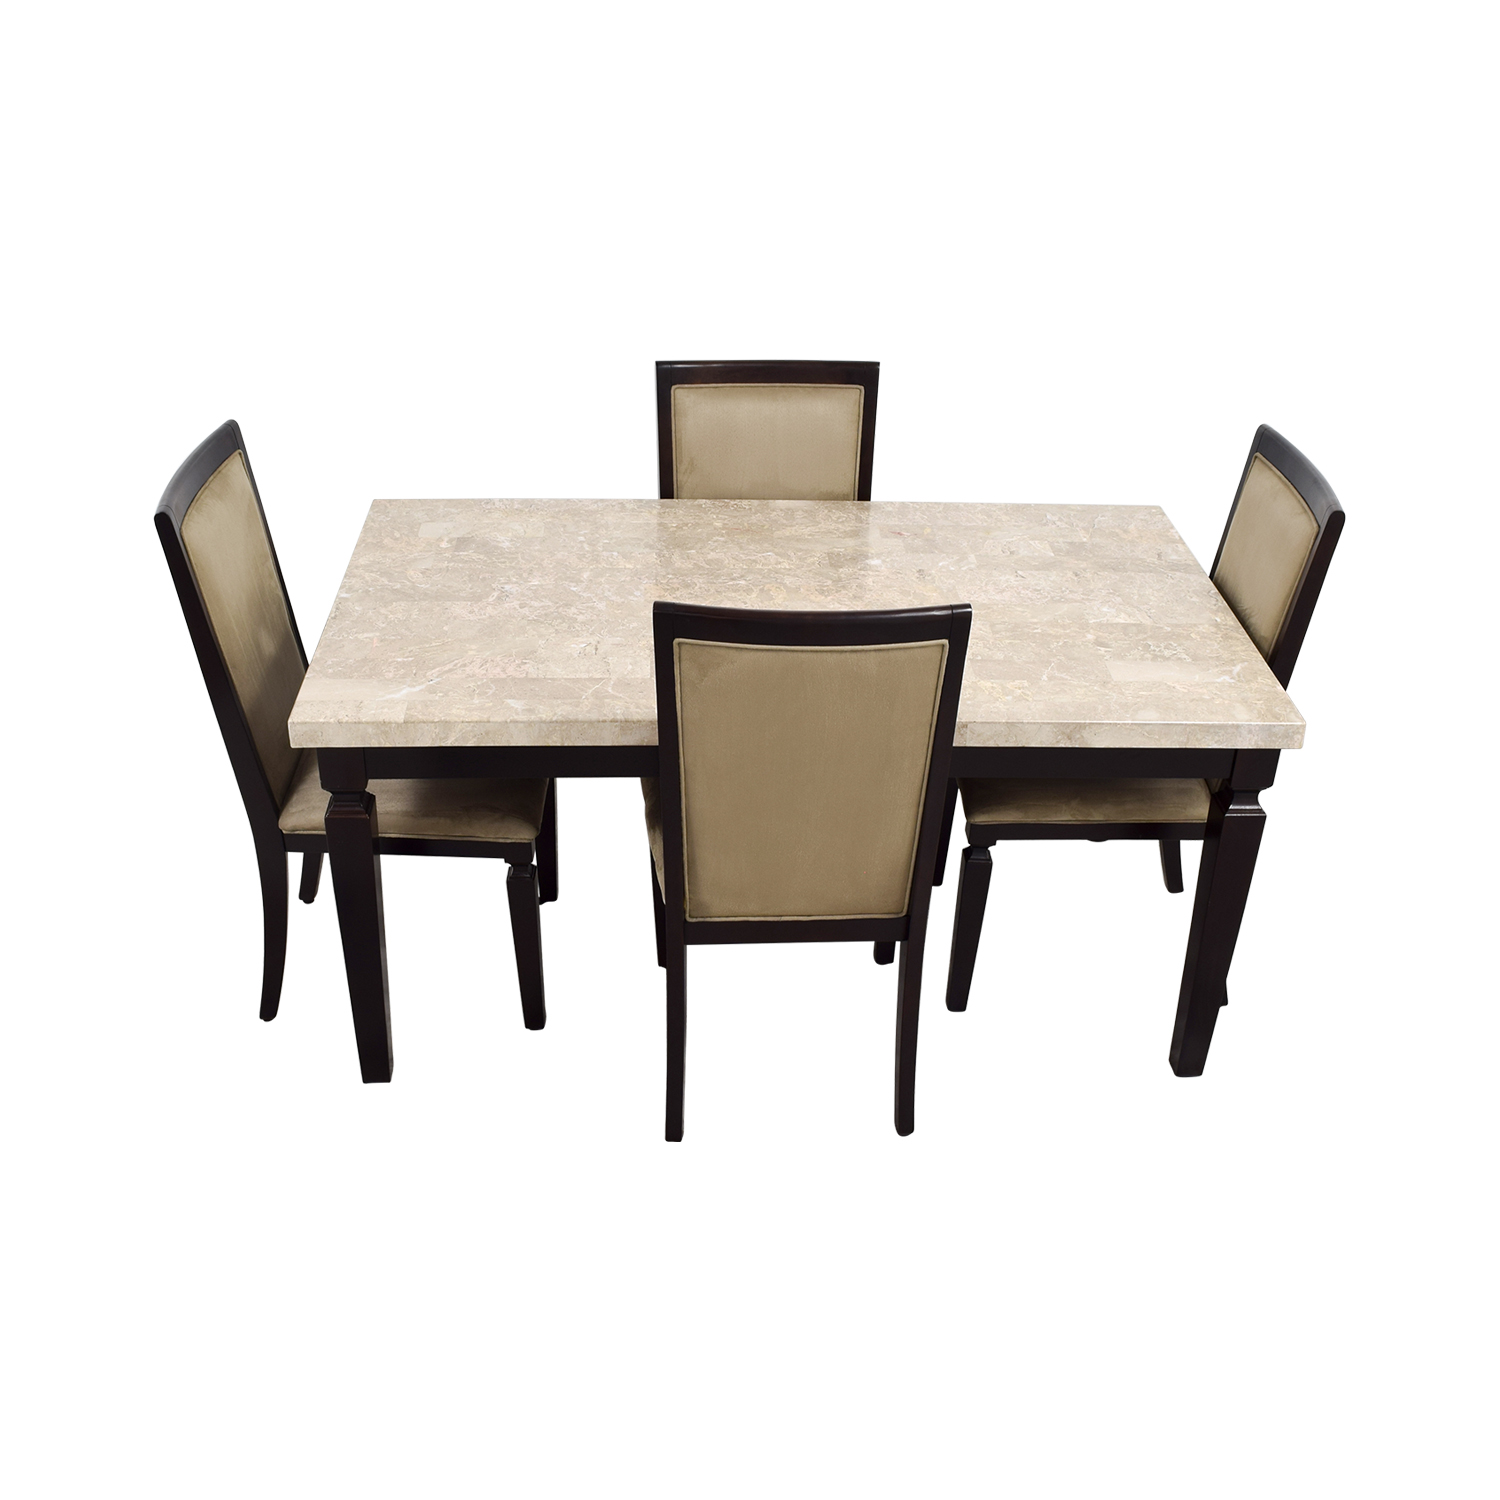 shop Raymour & Flanigan Raymour & Flanigan Rogue Marble Dining Set online